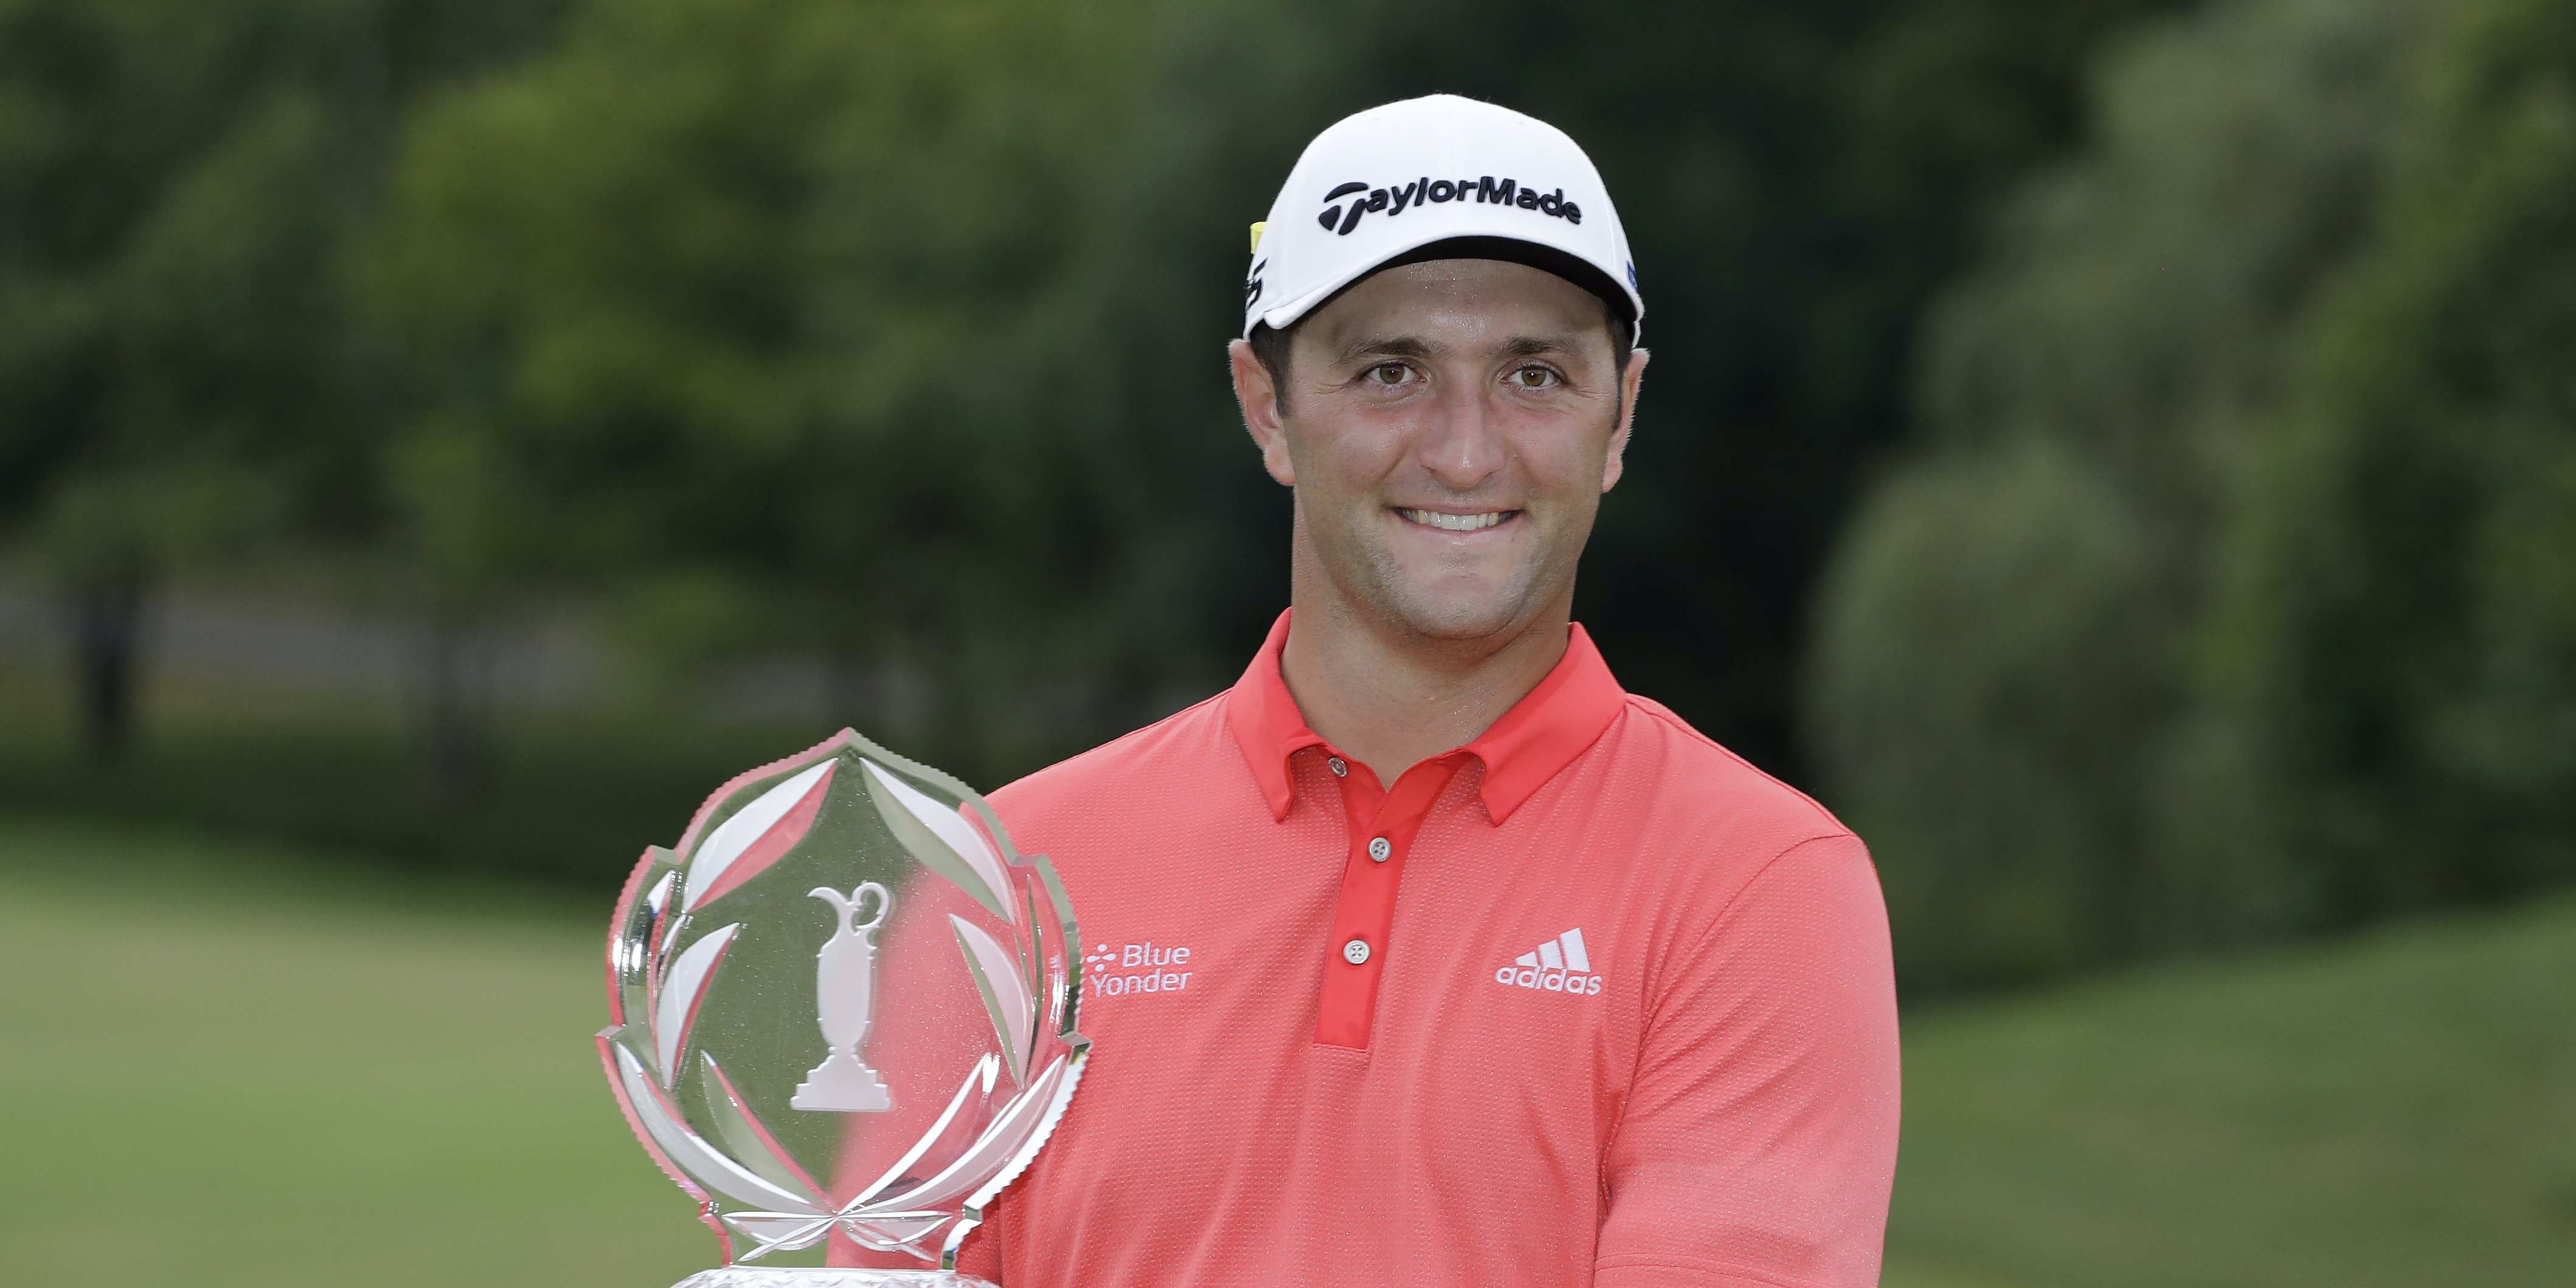 Jon Rahm overtakes Rory McIlroy for No 1 ranking with Memorial win - Golf365.com